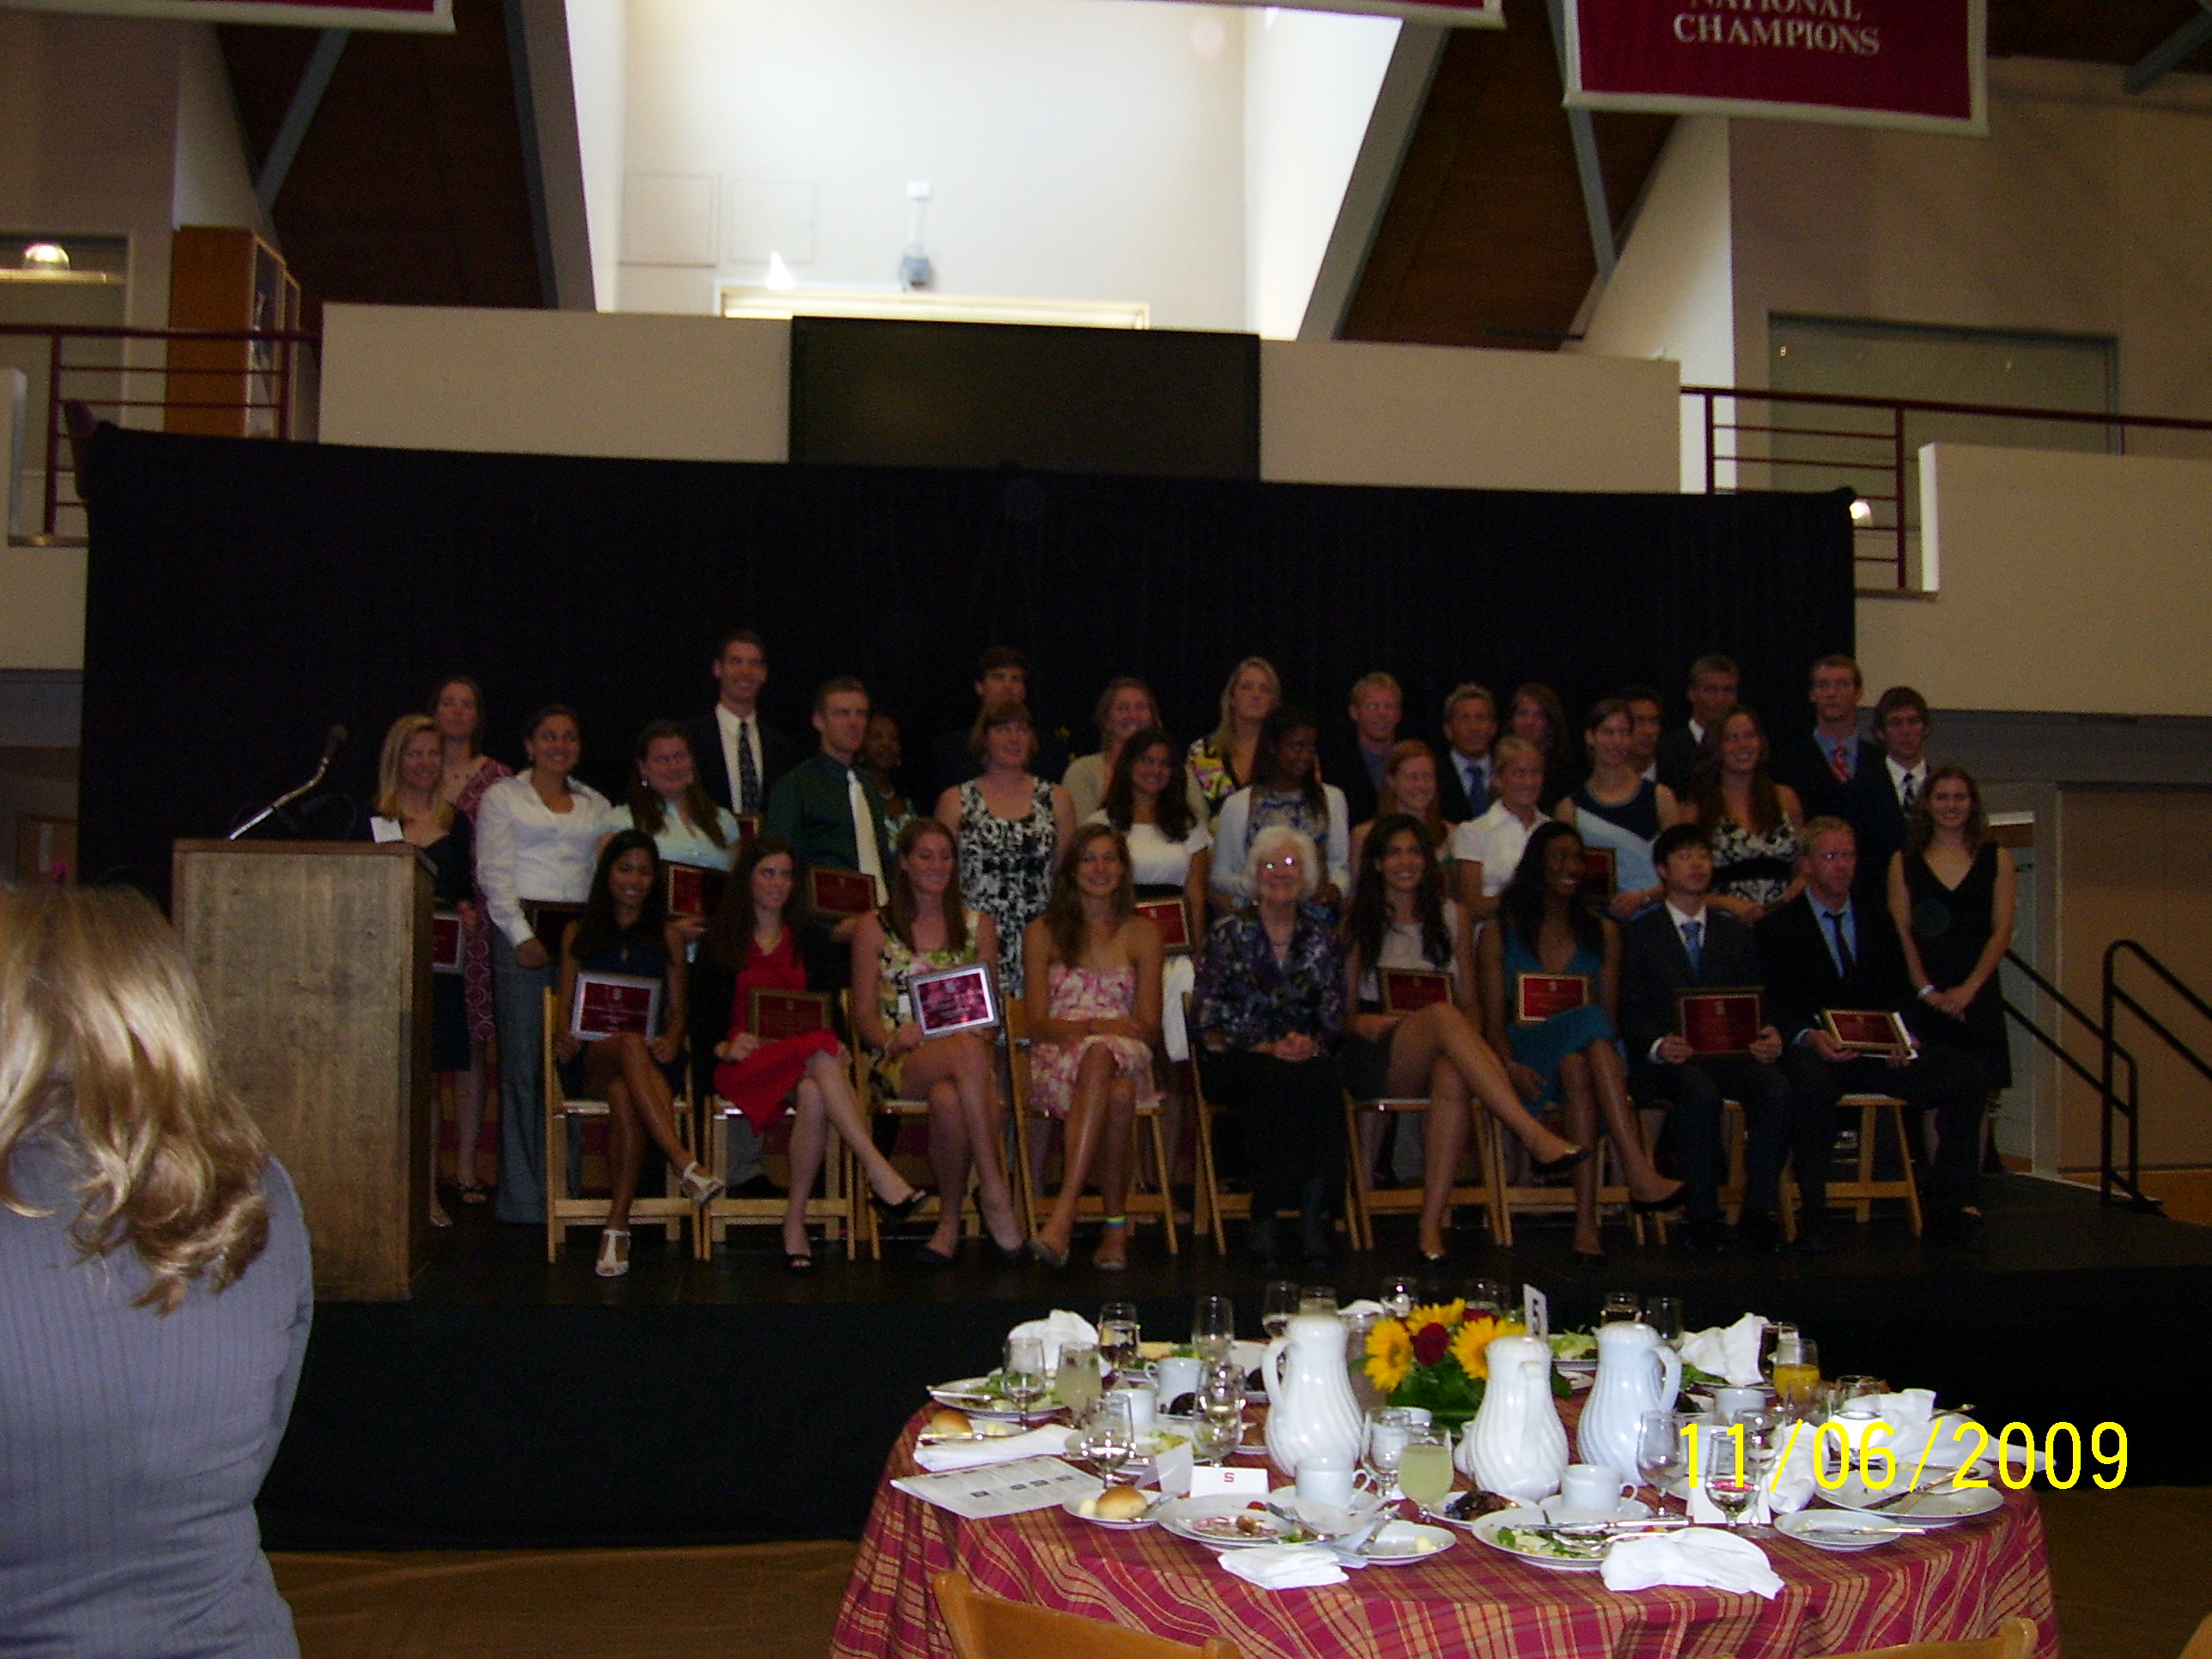 All the award winners (I'm the second one from the right in the front)